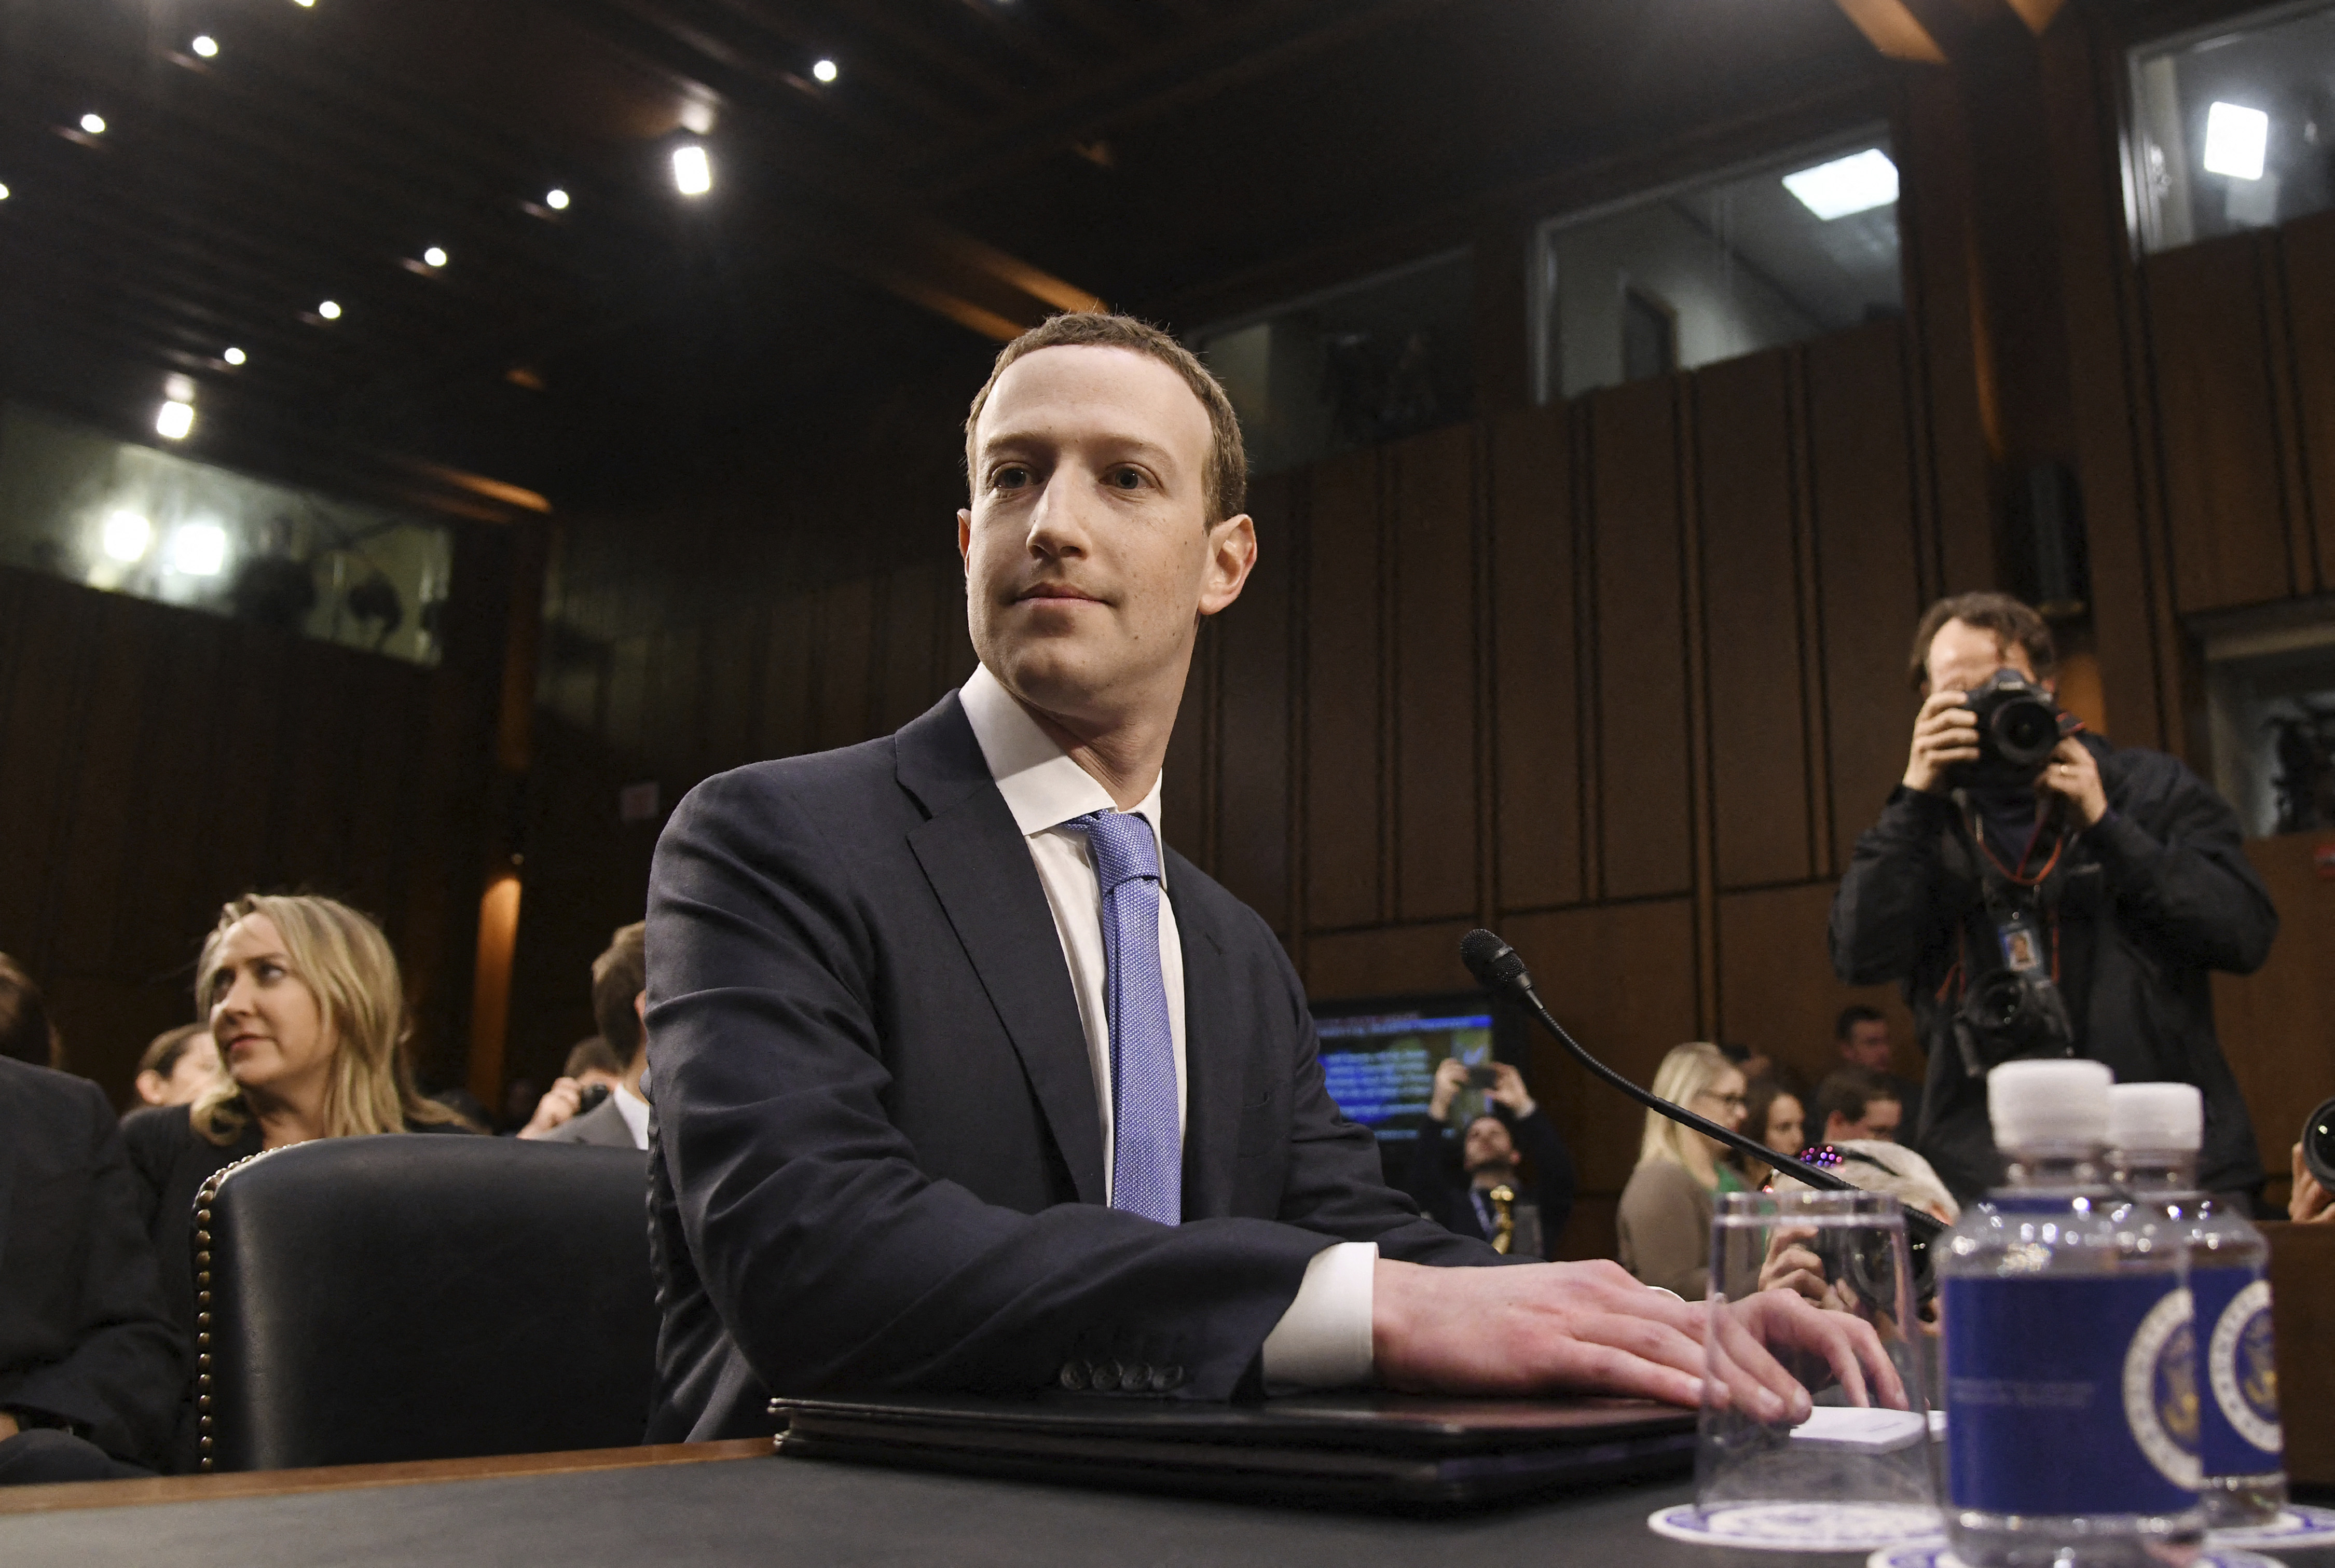 File photo dated April 10, 2018 of Facebook CEO Mark Zuckerberg testifies before the Senate judiciary and commerce committees on Capitol Hill over social media data breach, in Washington, DC, USA. The Federal Trade Commission sued to break up Facebook on Wednesday, asking a federal court to force the sell-off of assets such as Instagram and WhatsApp as independent businesses.